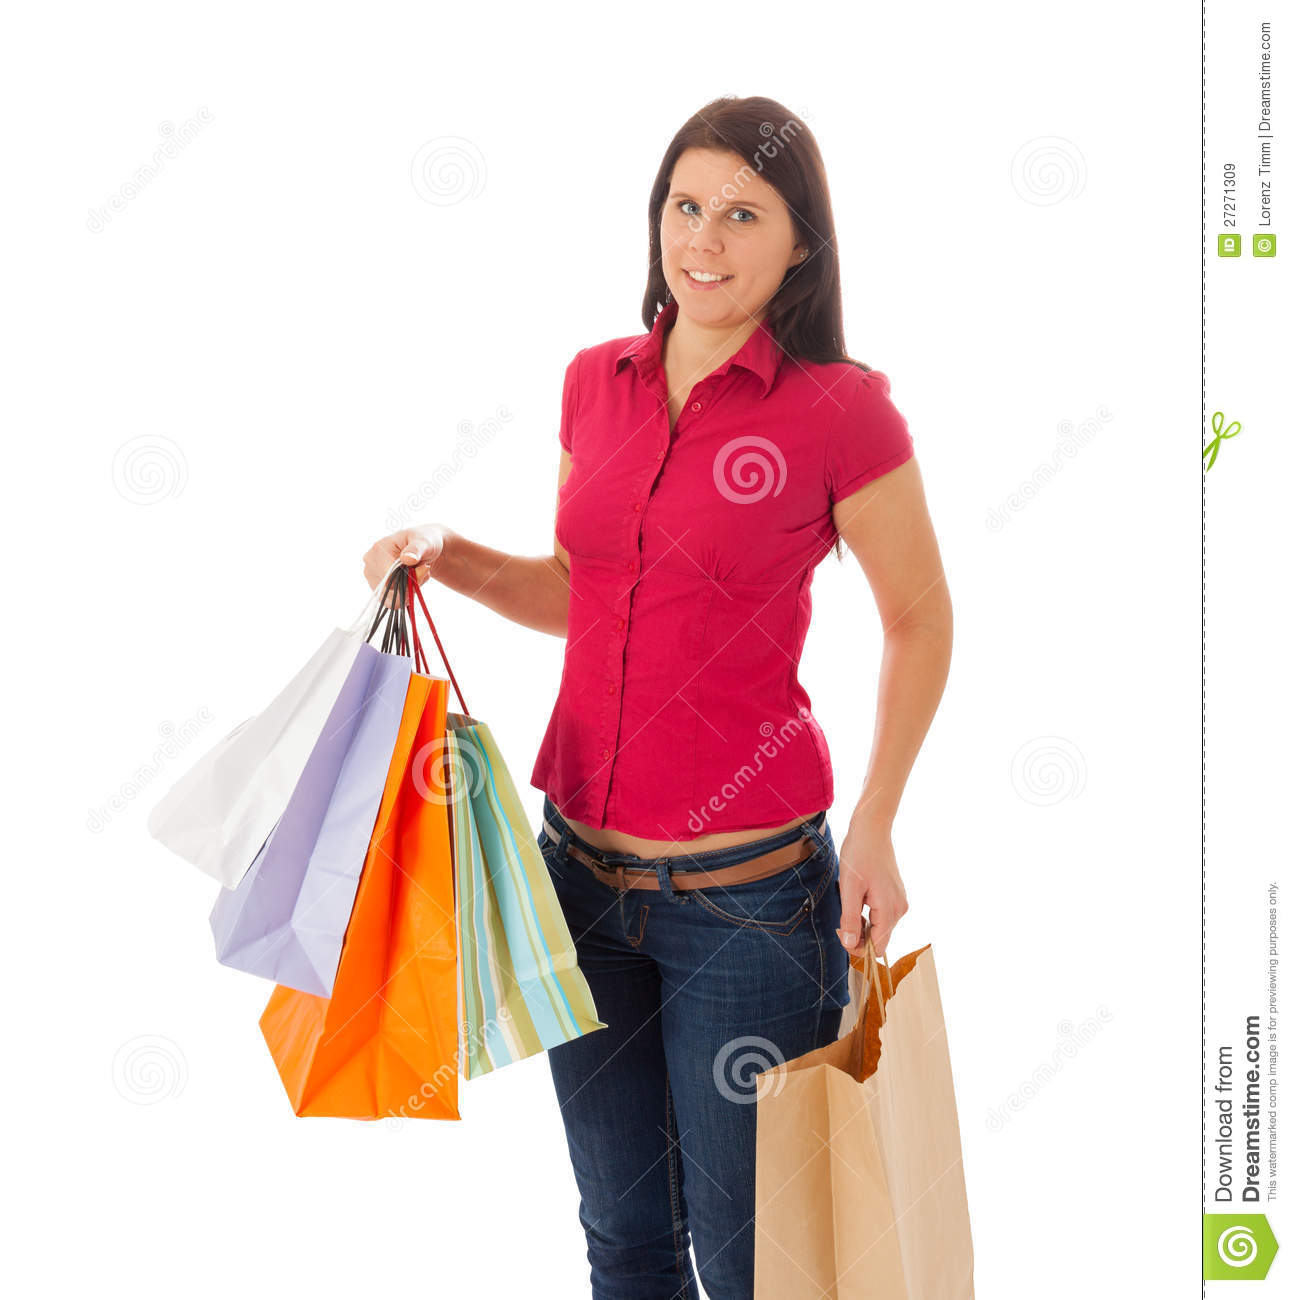 The Girl Is Carrying A Lot Of Shopping Bags Royalty Free Stock ...